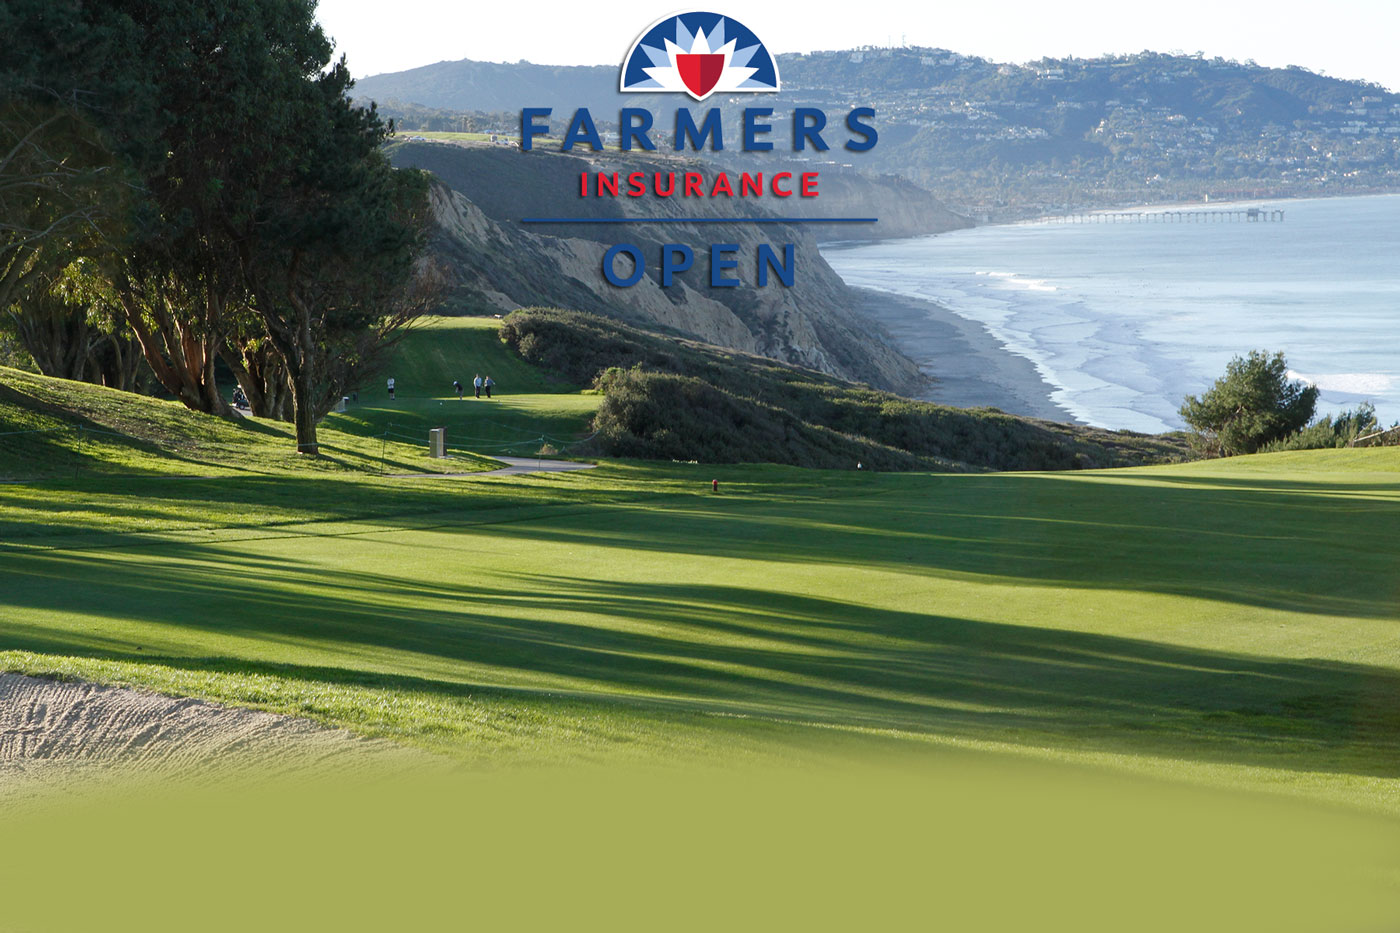 Farmers Insurance Open at Torrey Pines 2015